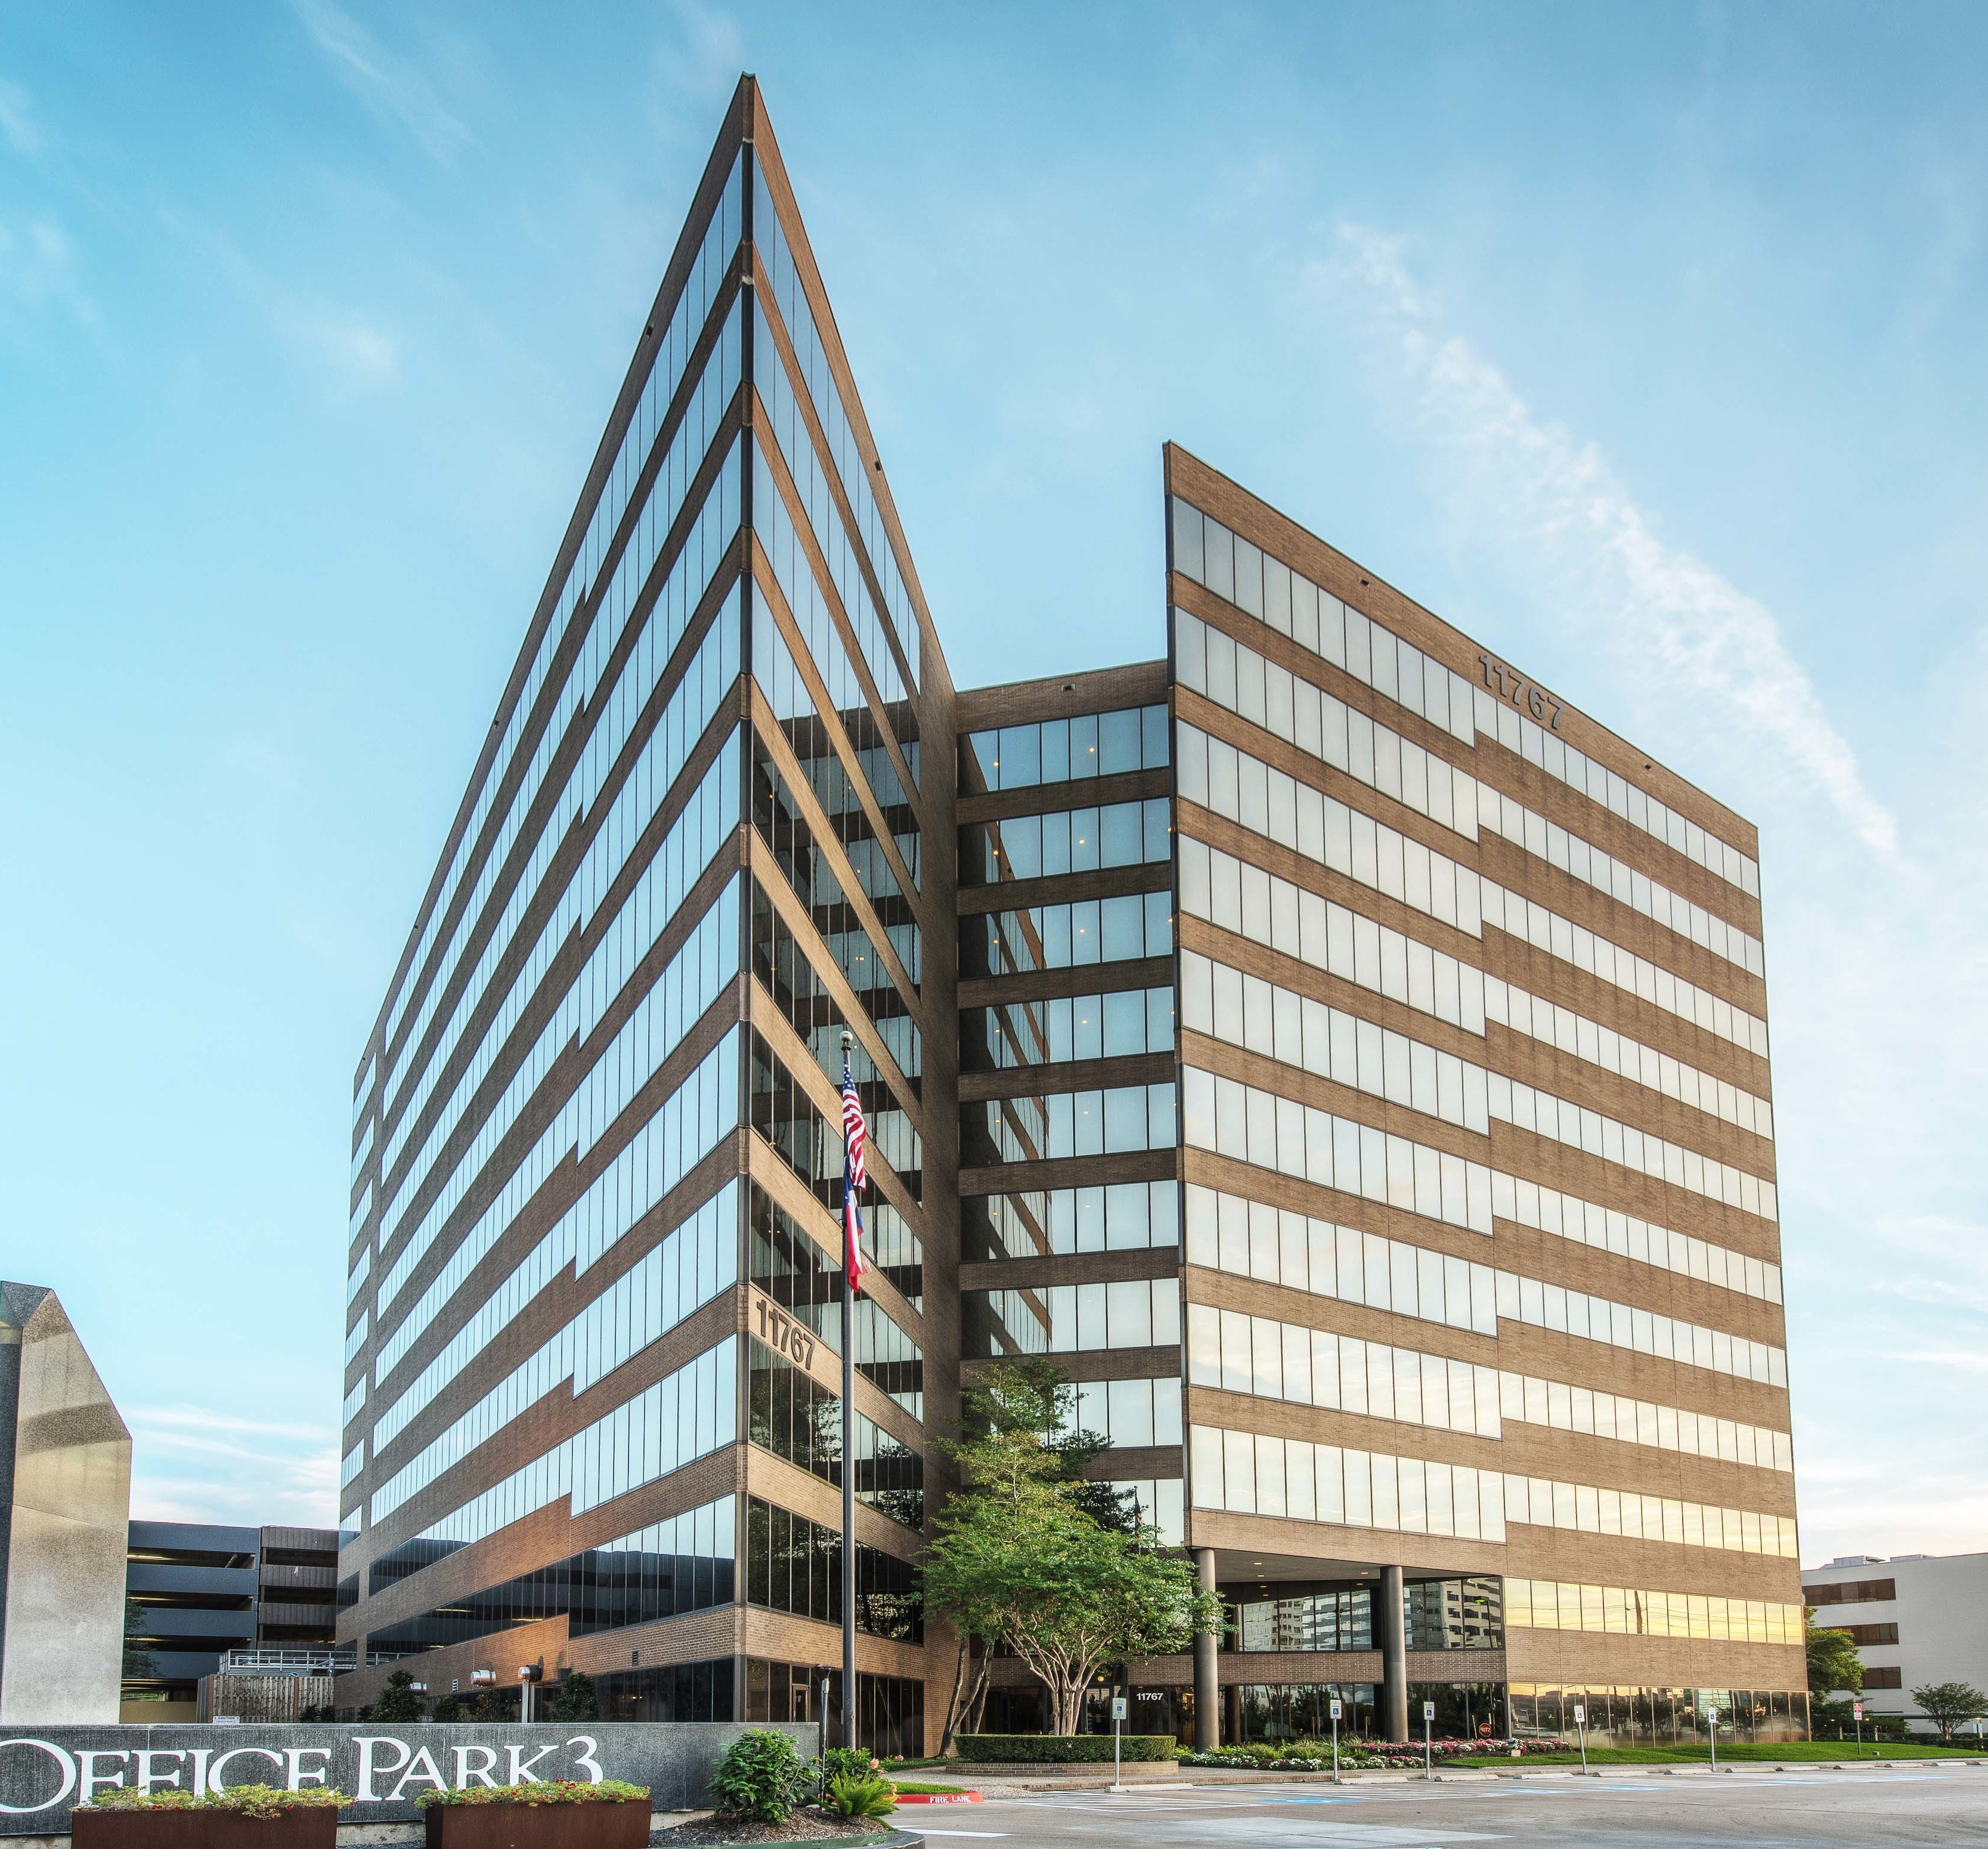 Excellent access to all major Houston business centers